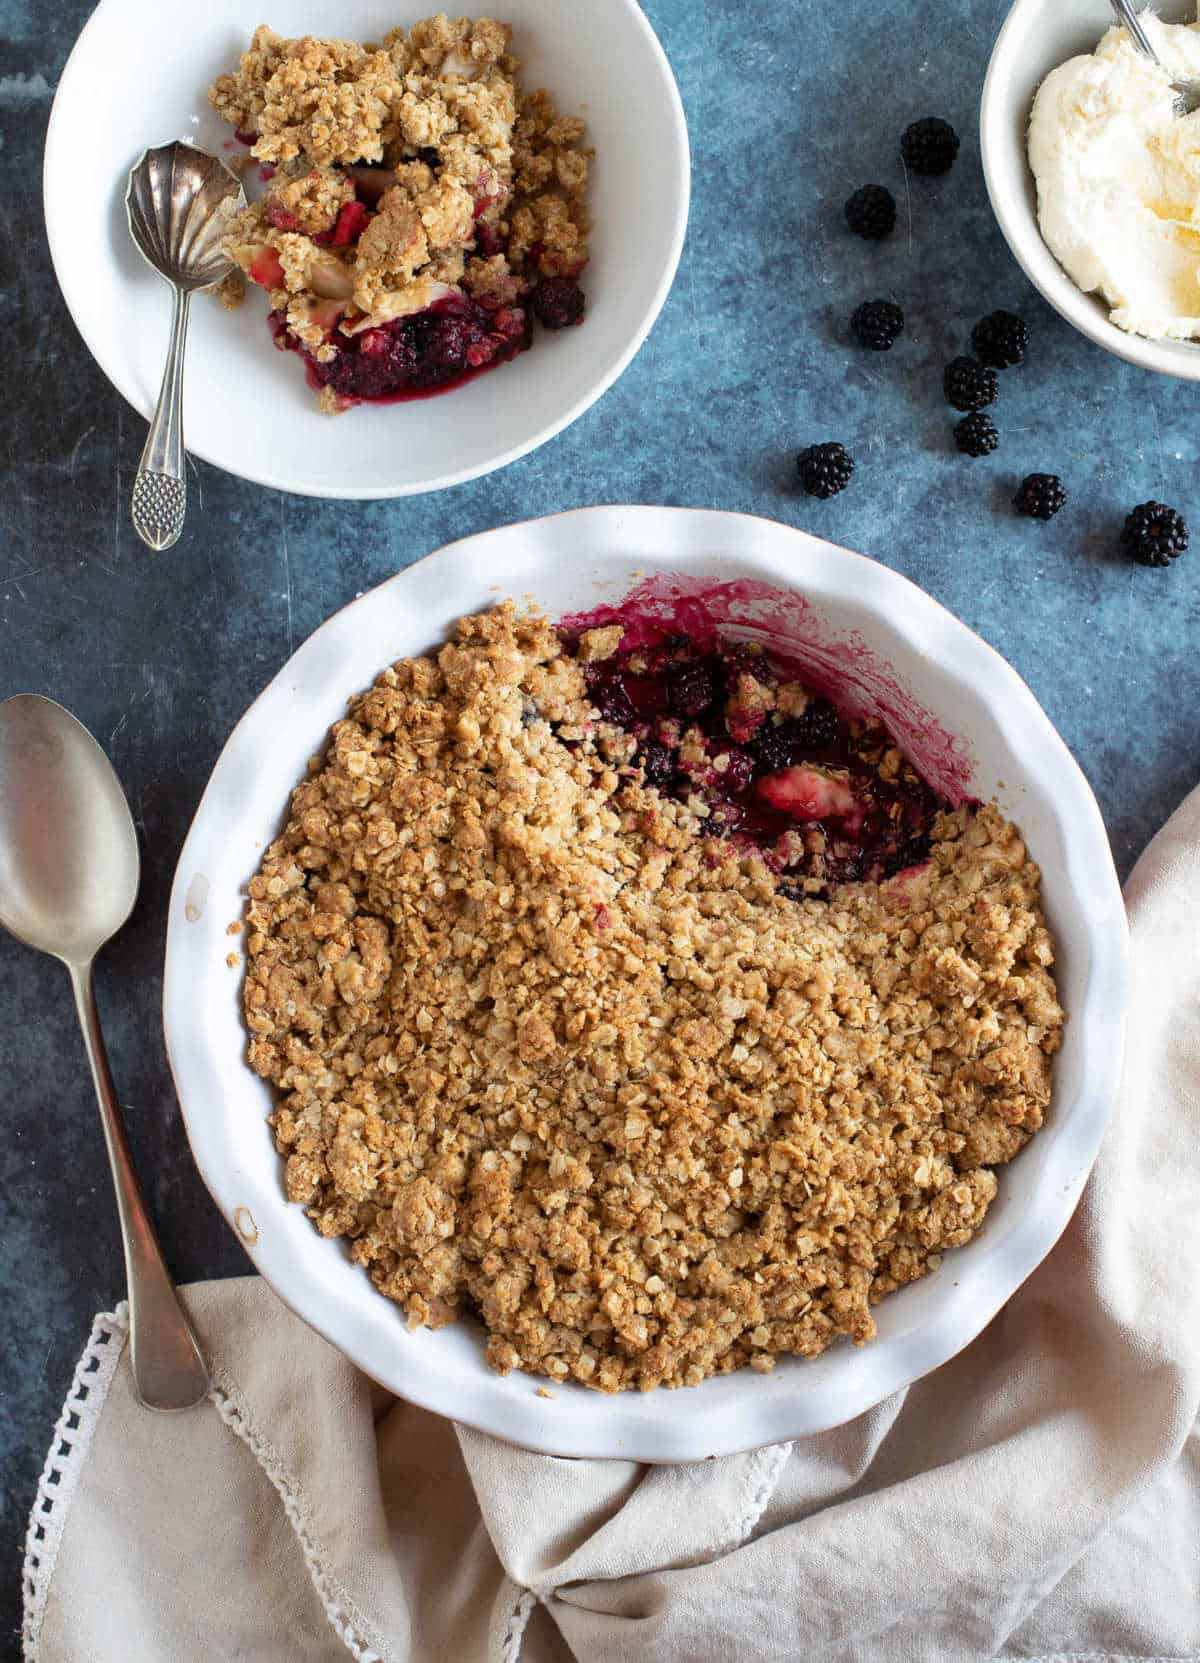 Blackberry crumble with whipped cream.